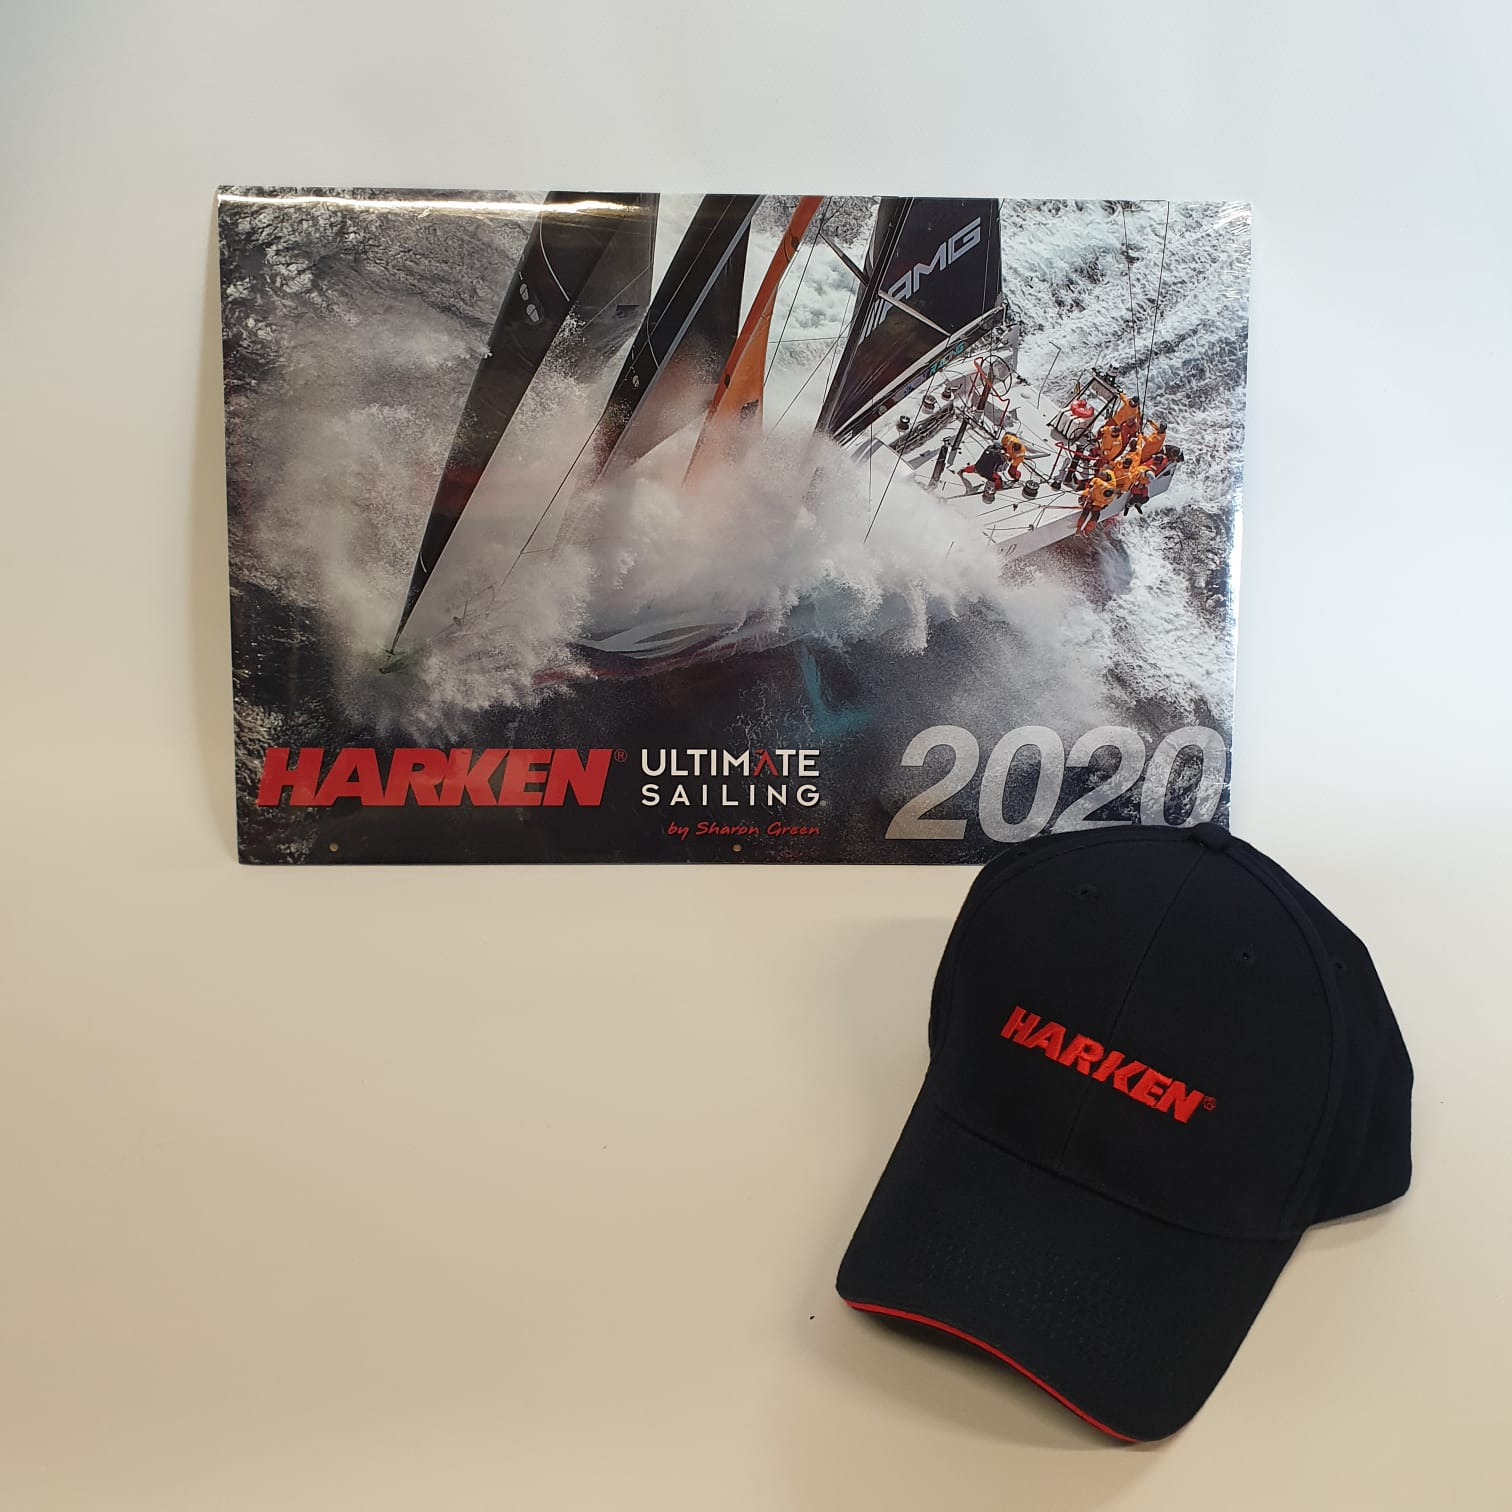 Win a Harken Calendar and Cap